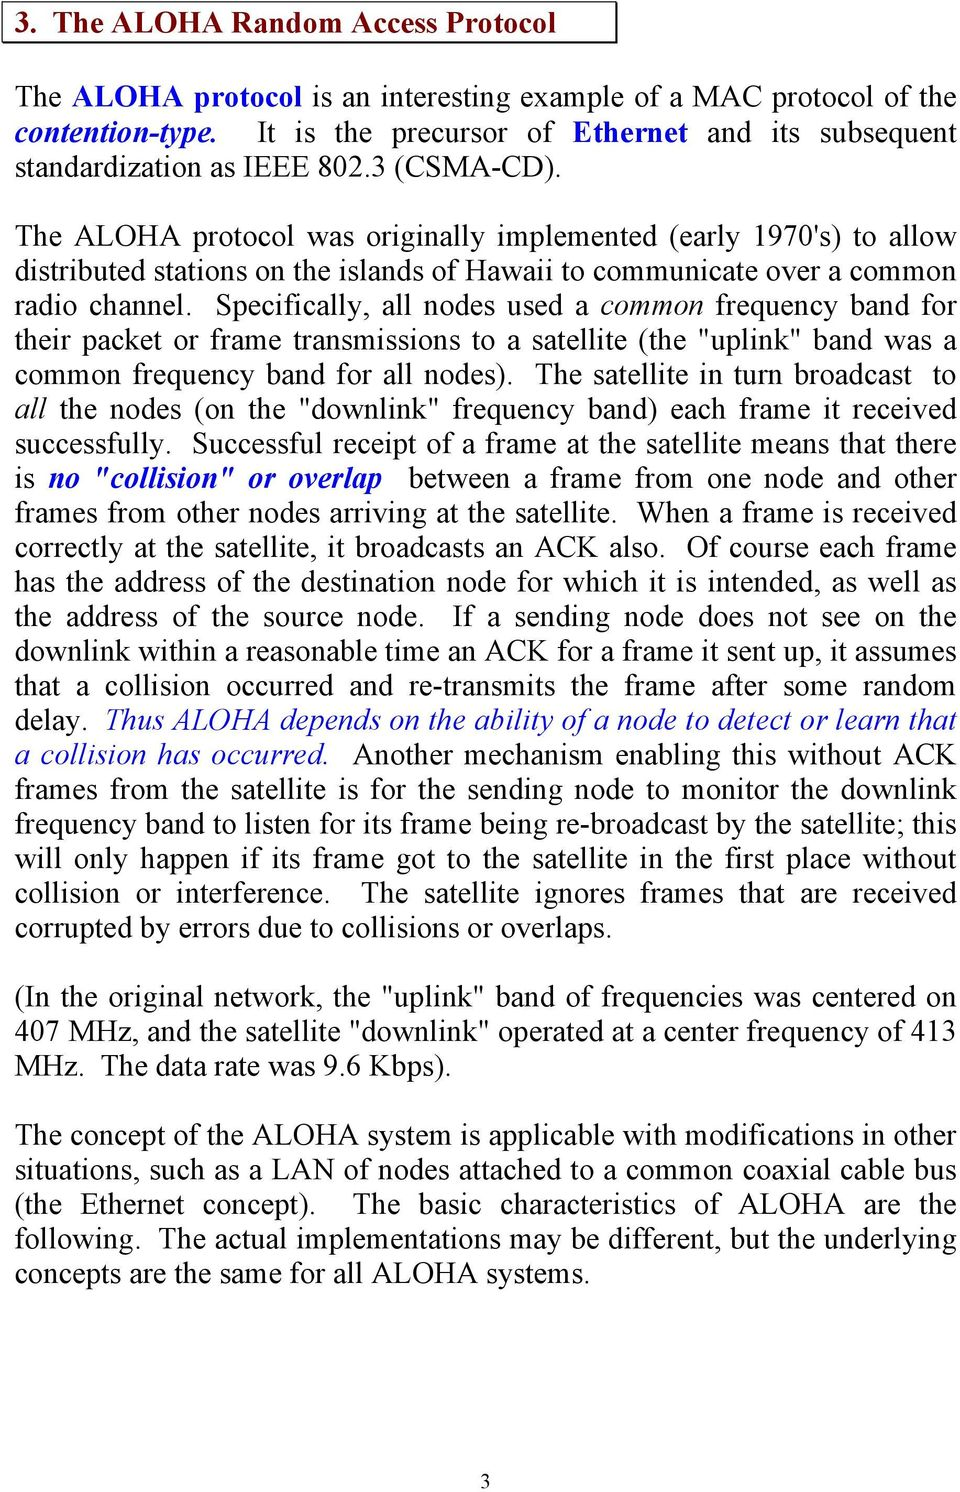 The ALOHA protocol was originally implemented (early 1970's) to allow distributed stations on the islands of Hawaii to communicate over a common radio channel.